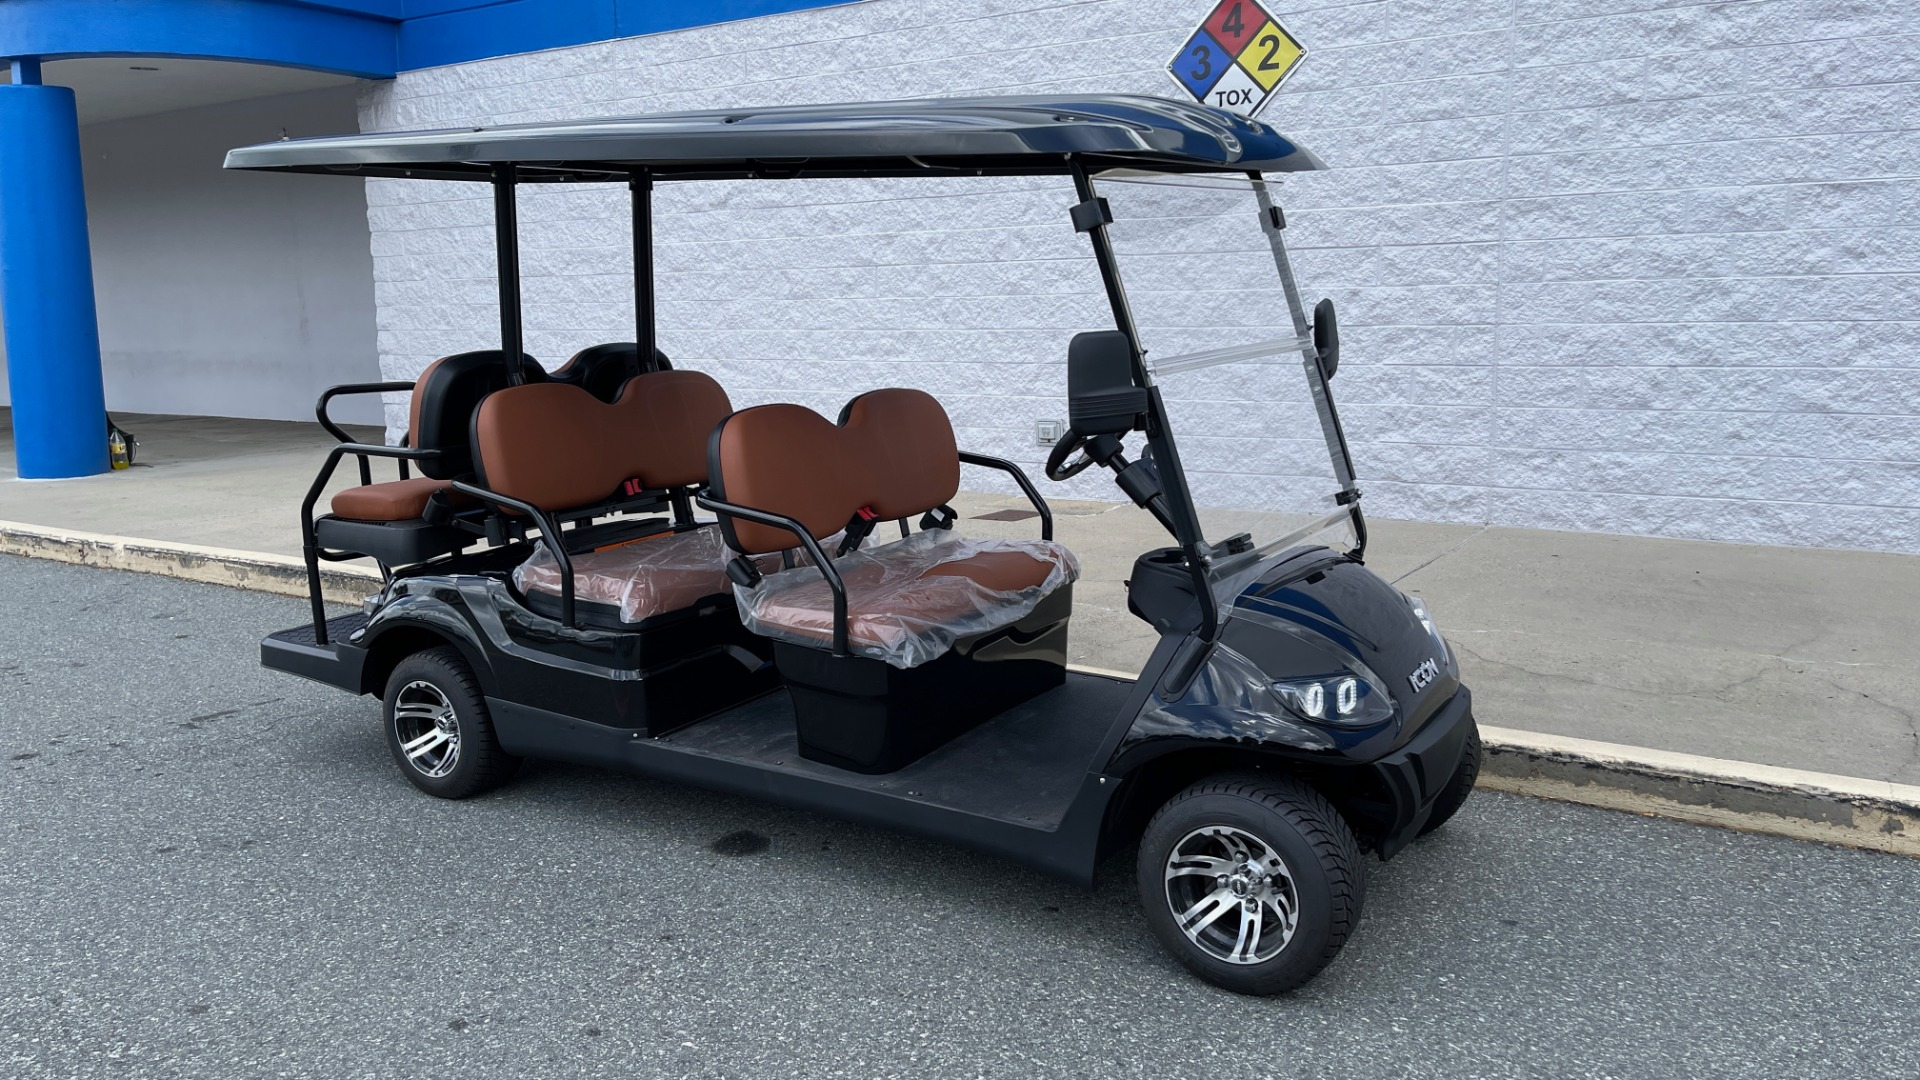 Used 2021 ICON i60 ELECTRIC CAR / 6-PASSENGER GOLF CART / 25MPH / NEW / 1-MILE for sale $10,999 at Formula Imports in Charlotte NC 28227 3